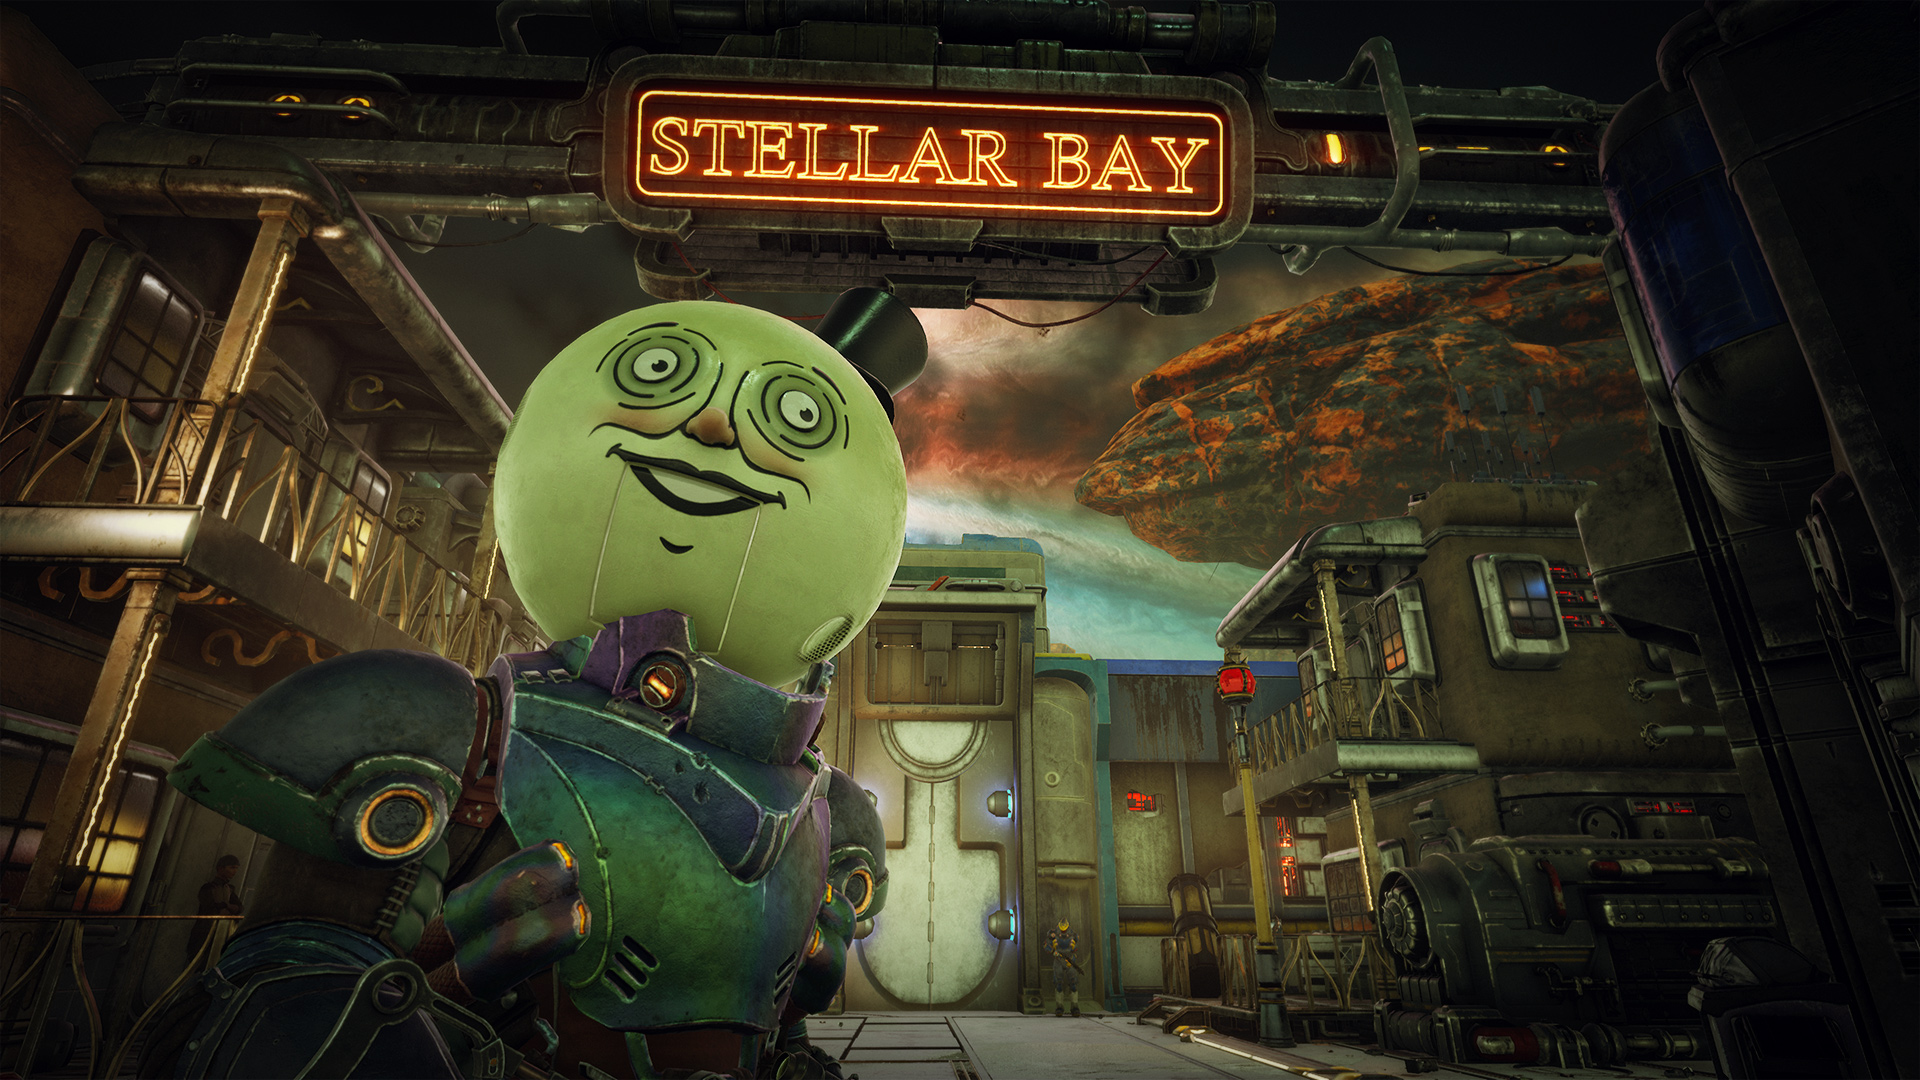 Greetings from Stellar Bay - Wish You Were Here